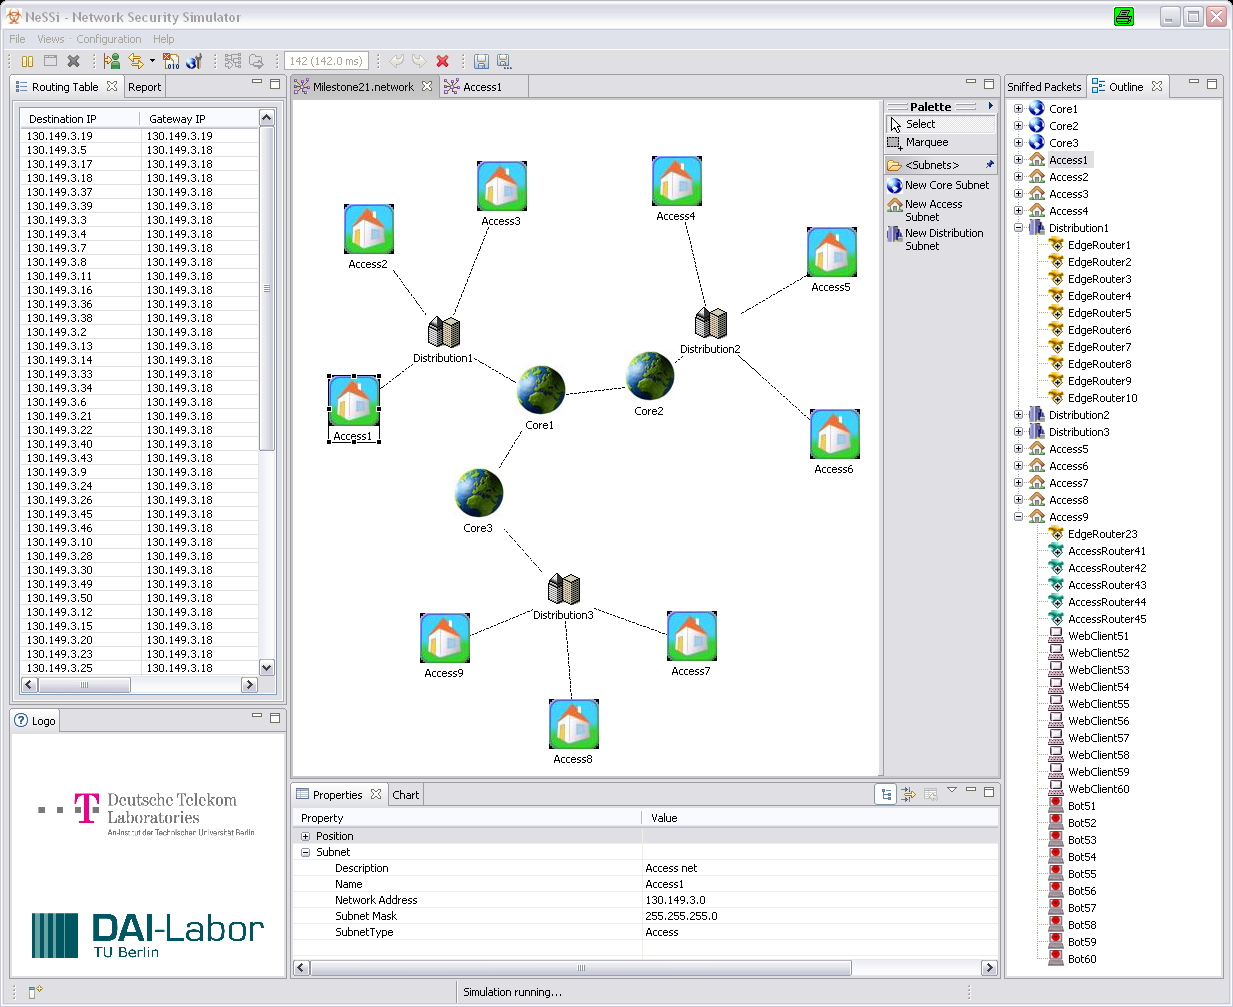 Figure 1: Graphical user interface of NeSSi - Main Network Editor window distribution he wants to update.